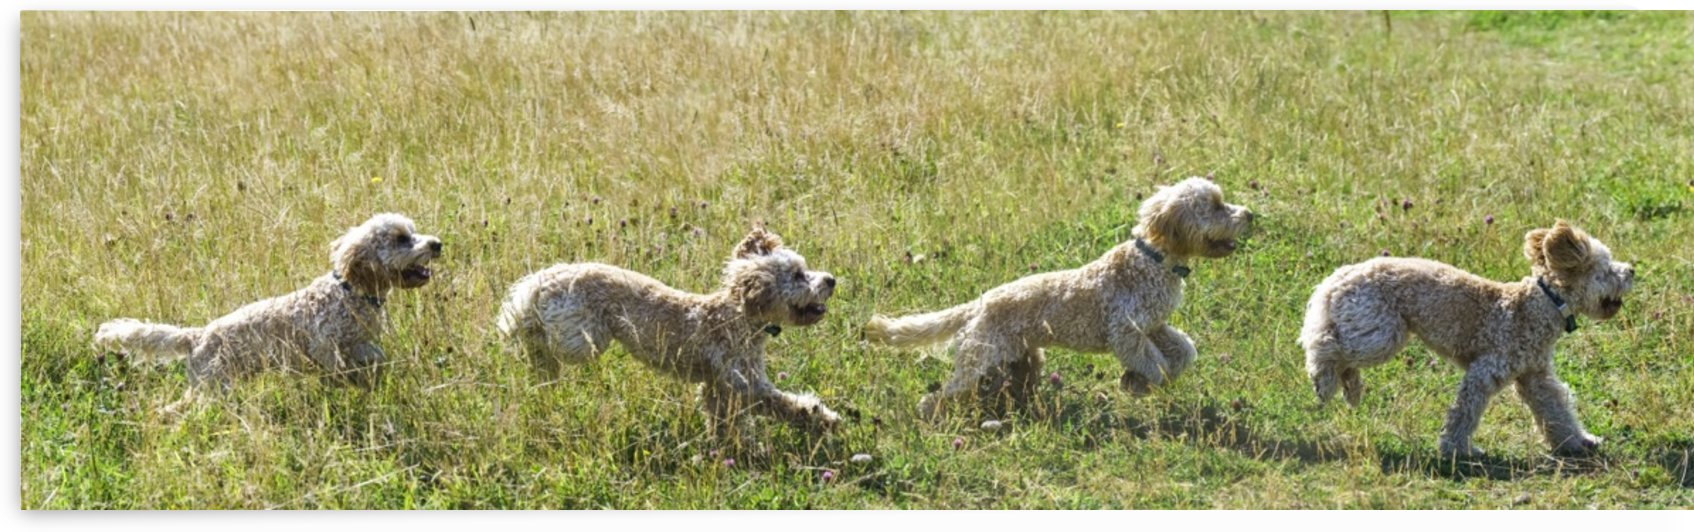 Composite of a blond cockapoo running across a grass field; South Shields, Tyne and Wear, England by PacificStock